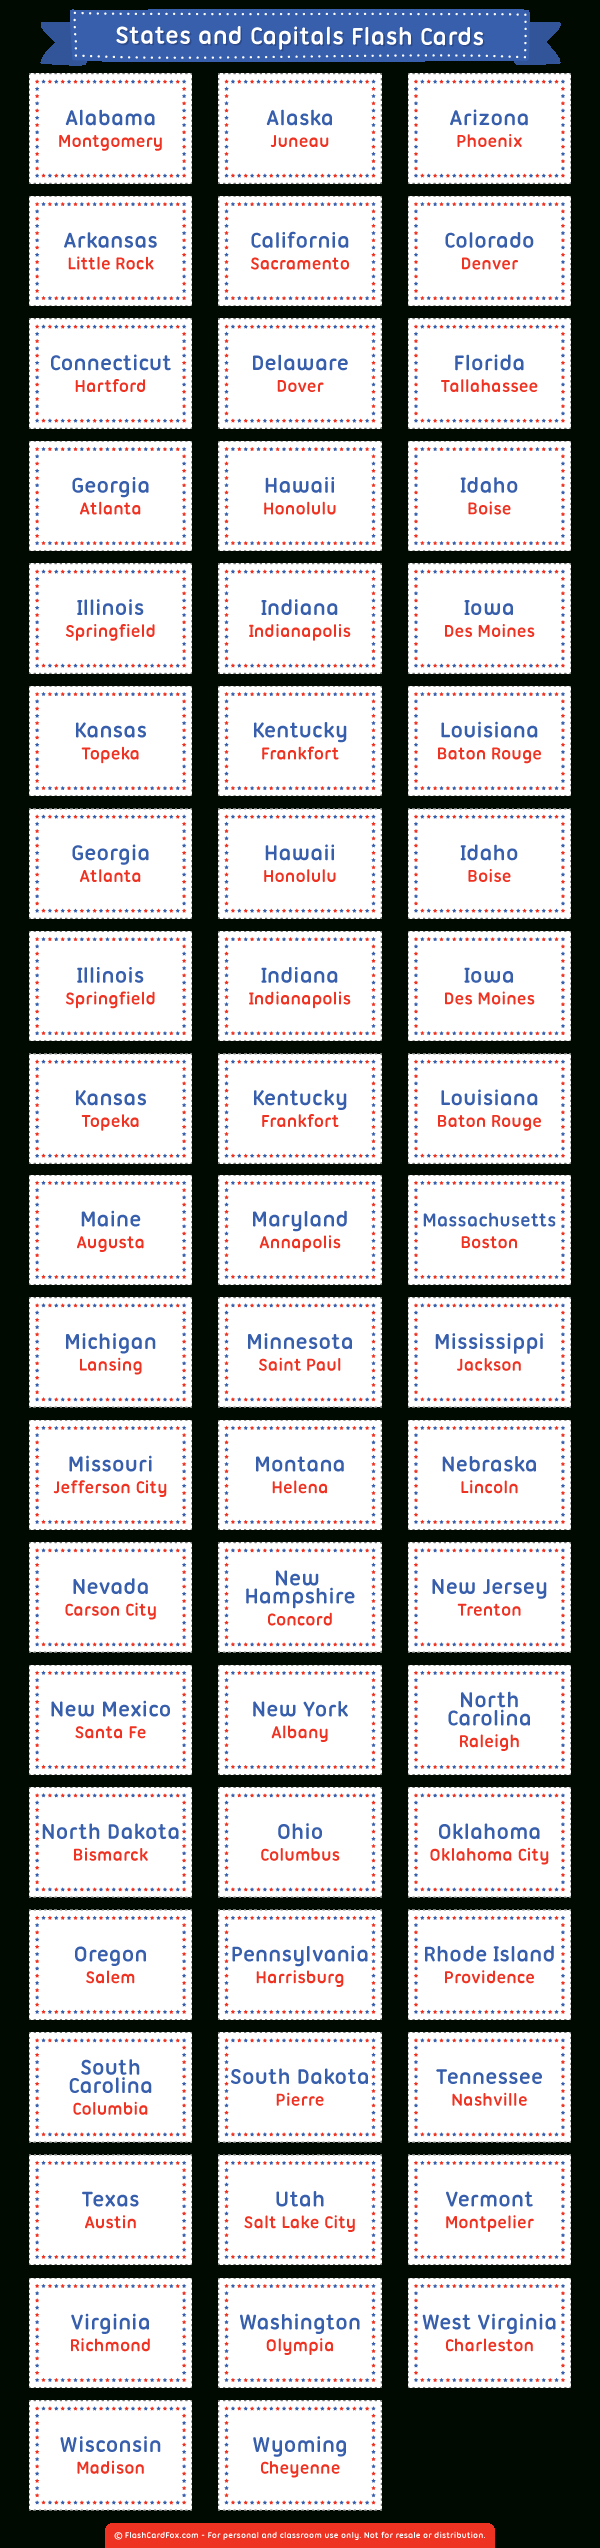 Pinmuse Printables On Flash Cards At Flashcardfox | States - State Capital Flashcards Printable Free